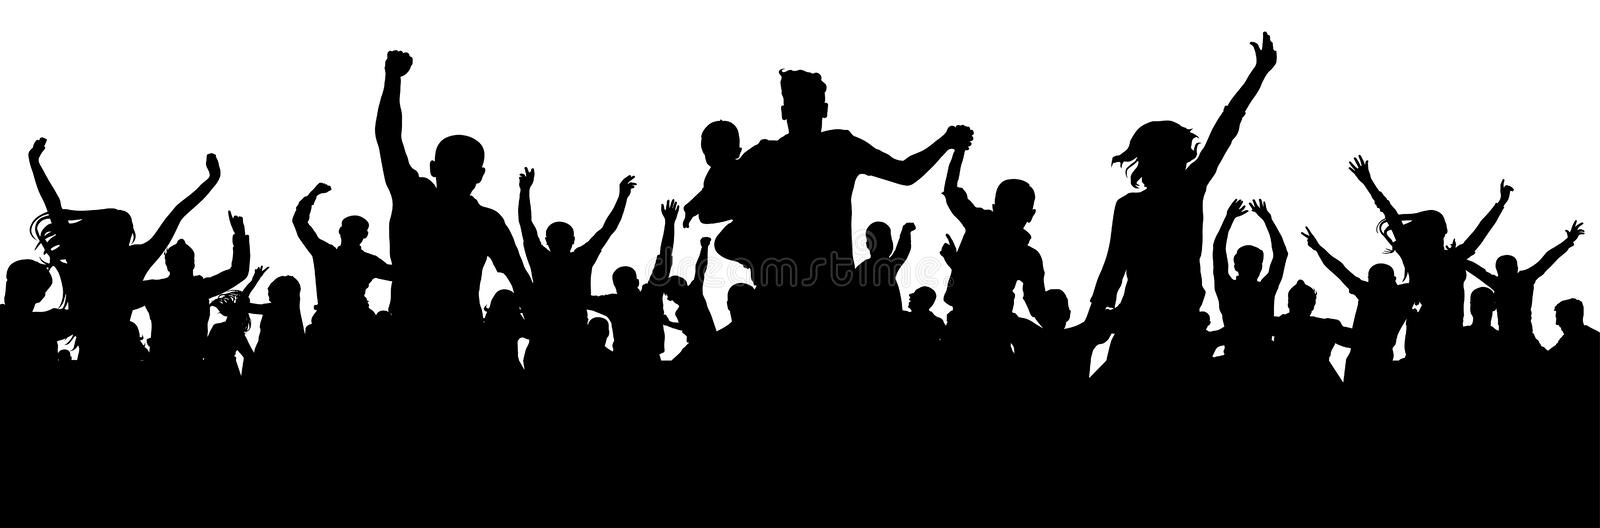 Celebration people silhouette. Crowd concert party audience. Soccer cheer fan goal. Cheerful crowd vector vector illustration